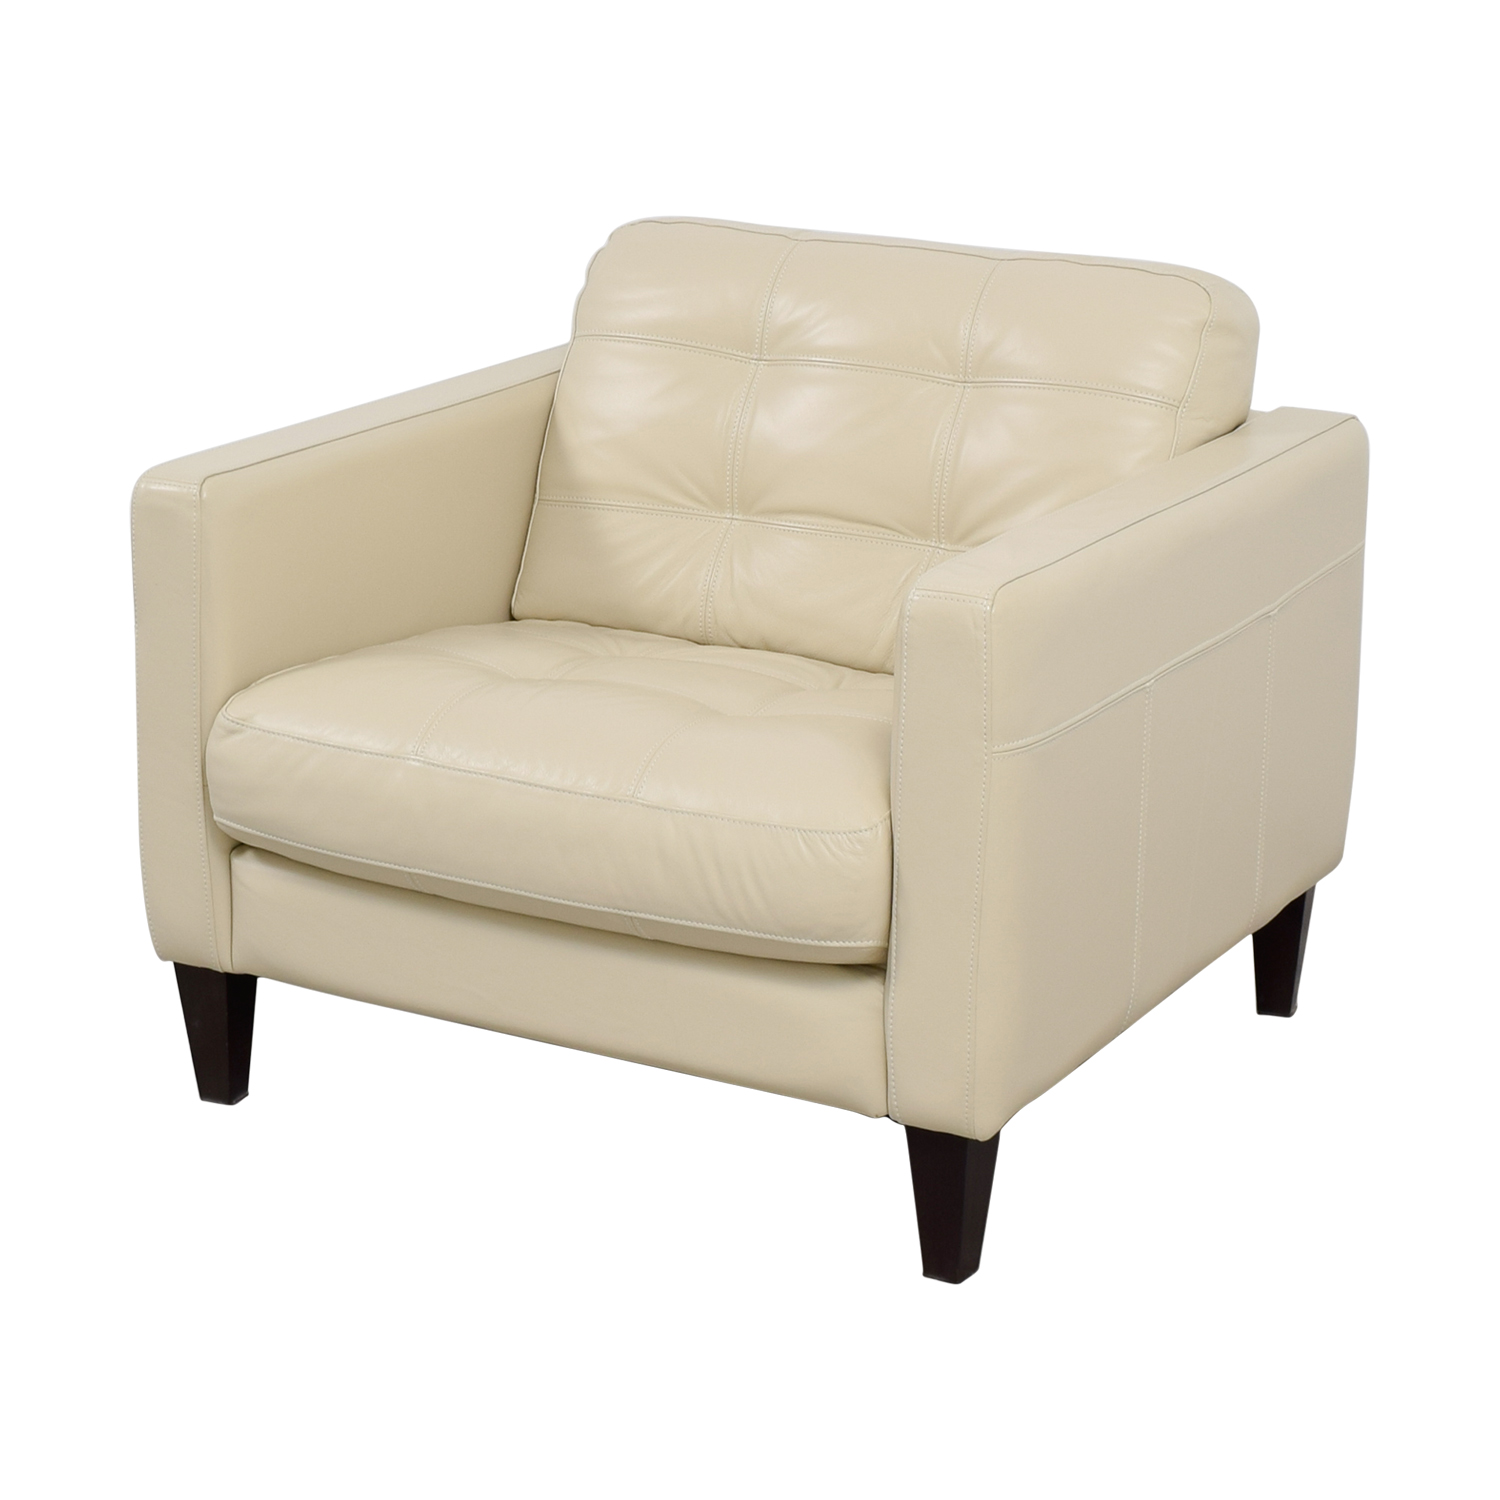 ... Macys Macys Milano White Leather Tufted Accent Chair Dimensions ...